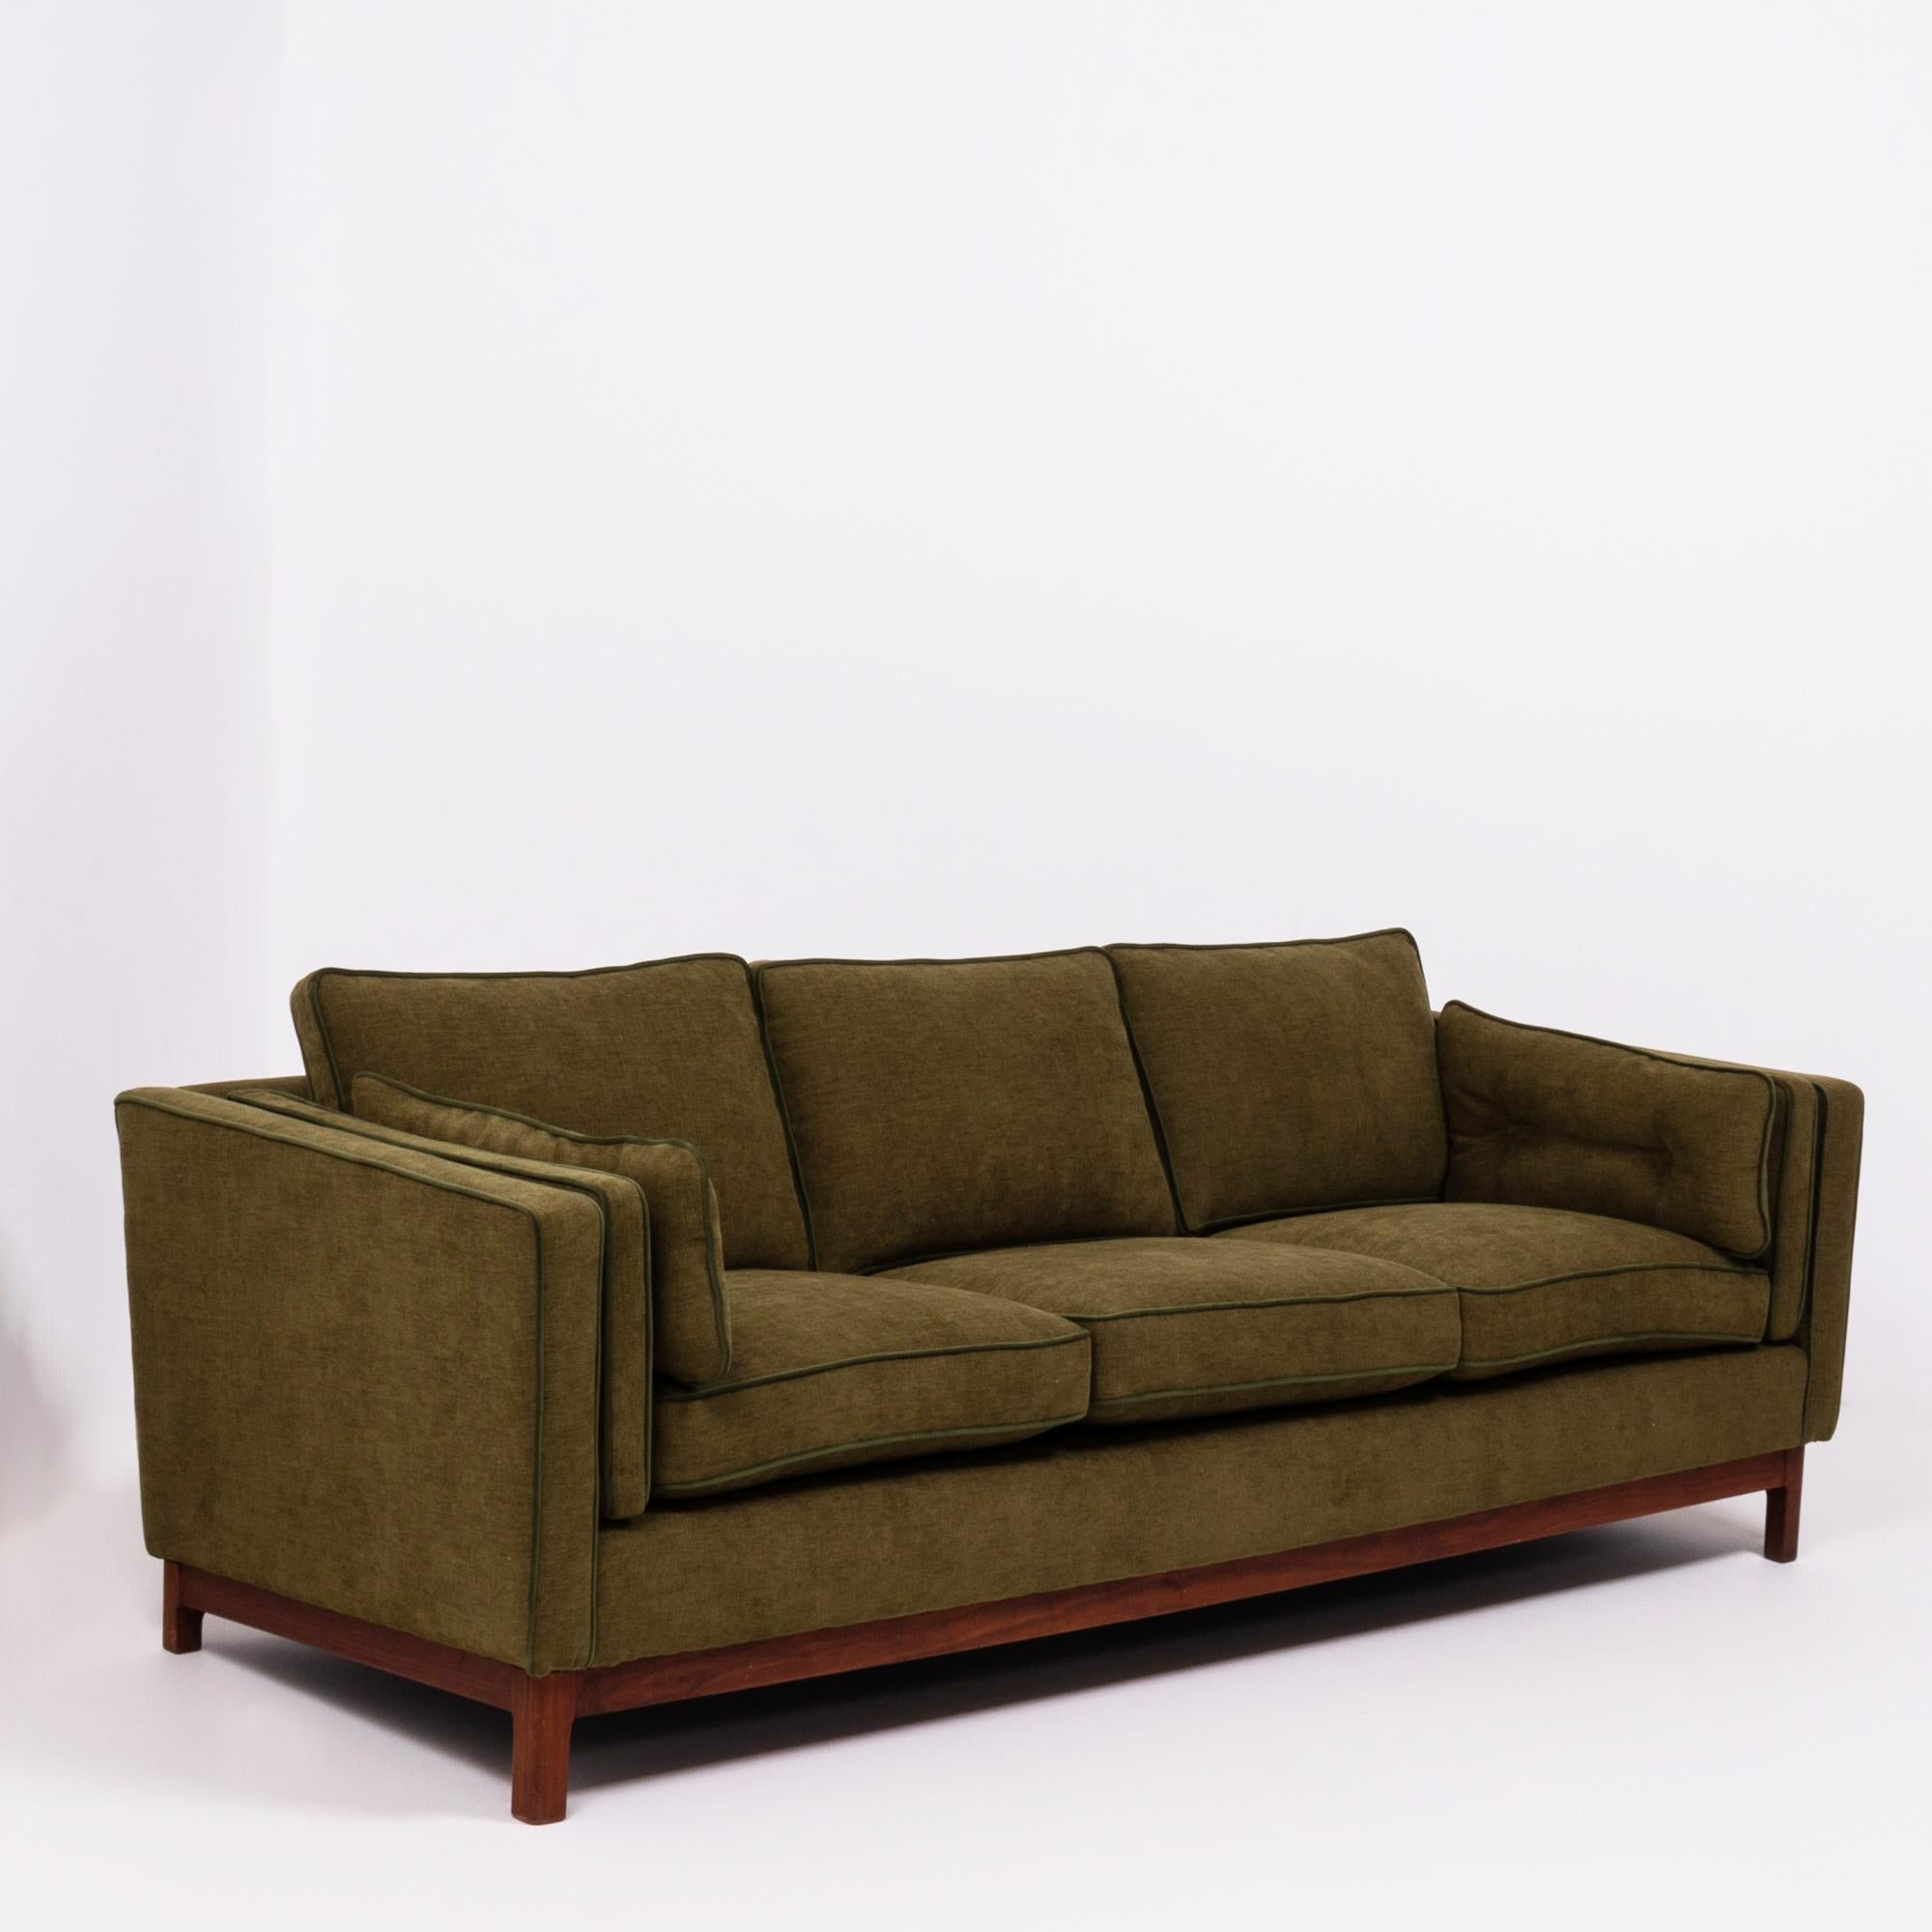 Midcentury Green Fabric 3 Seat Sofa By Folke Ohlsson For DUX